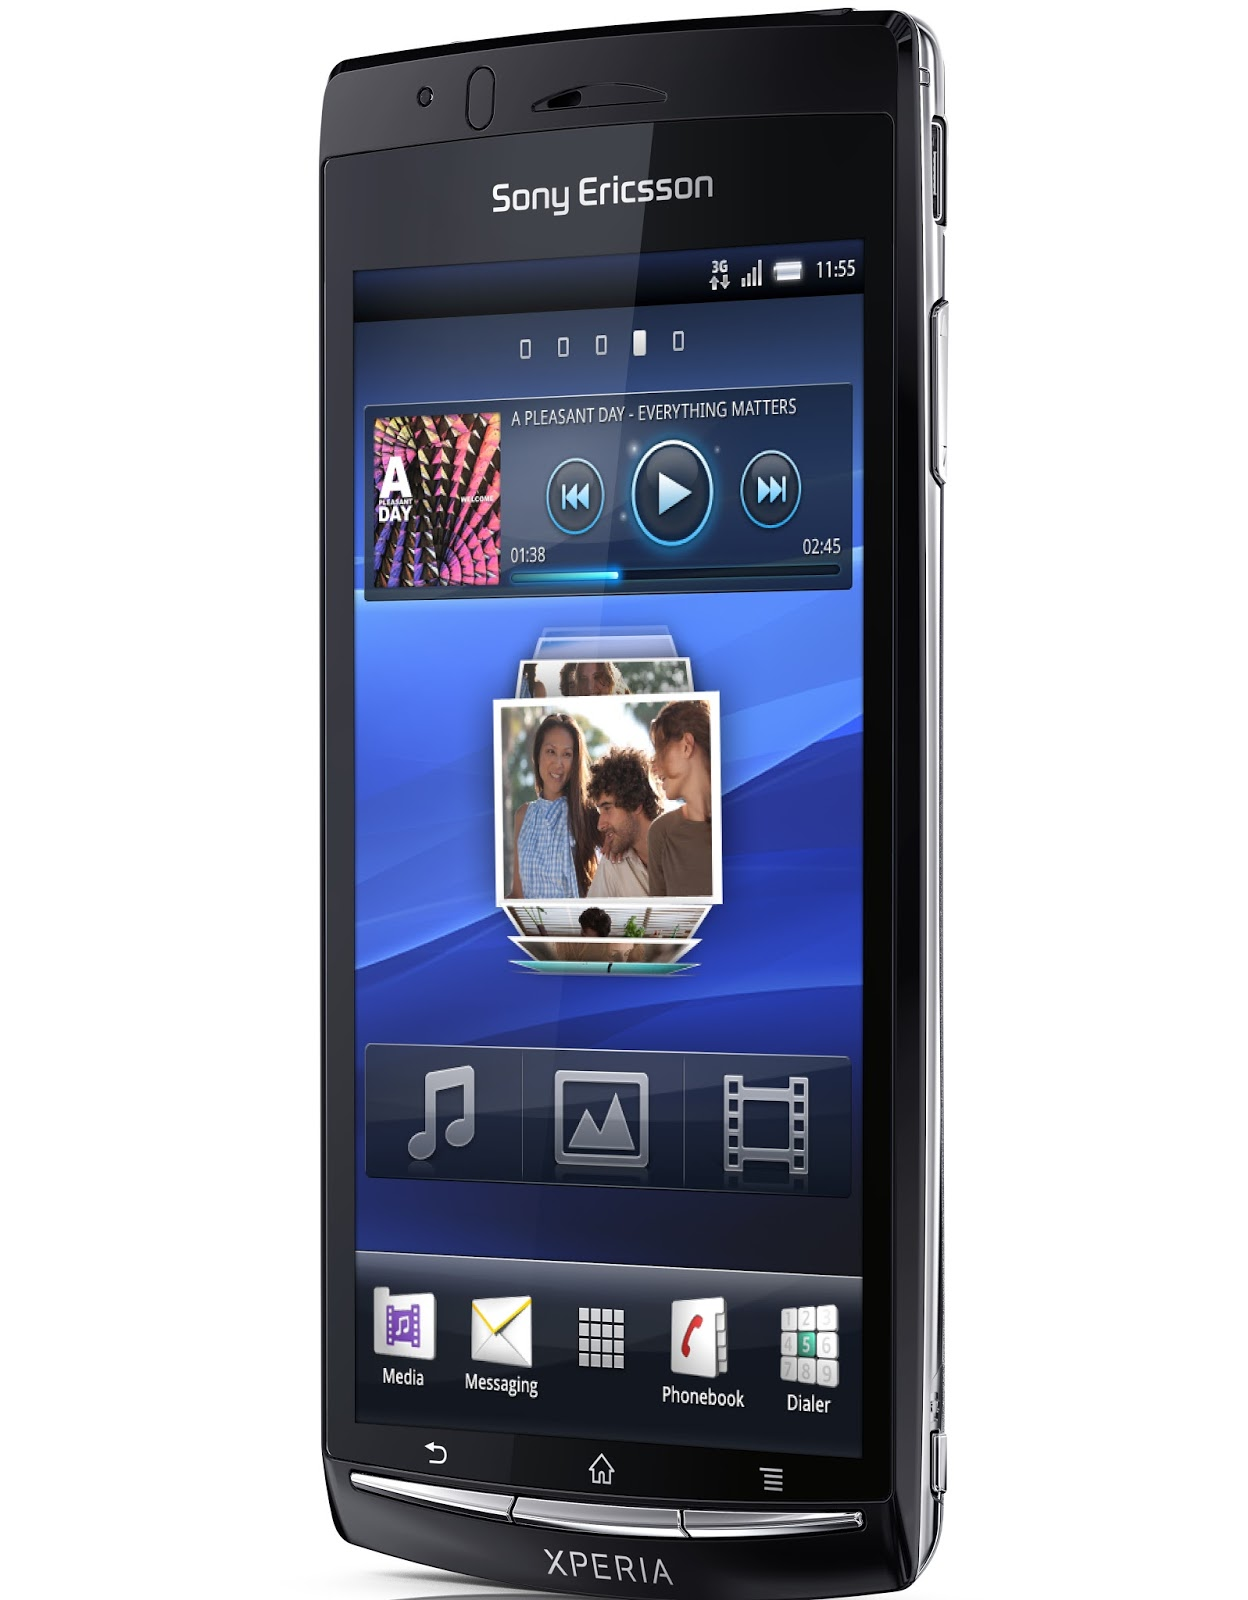 Sony Xperia Arc S LT18i - My Android & Our Android Apps...